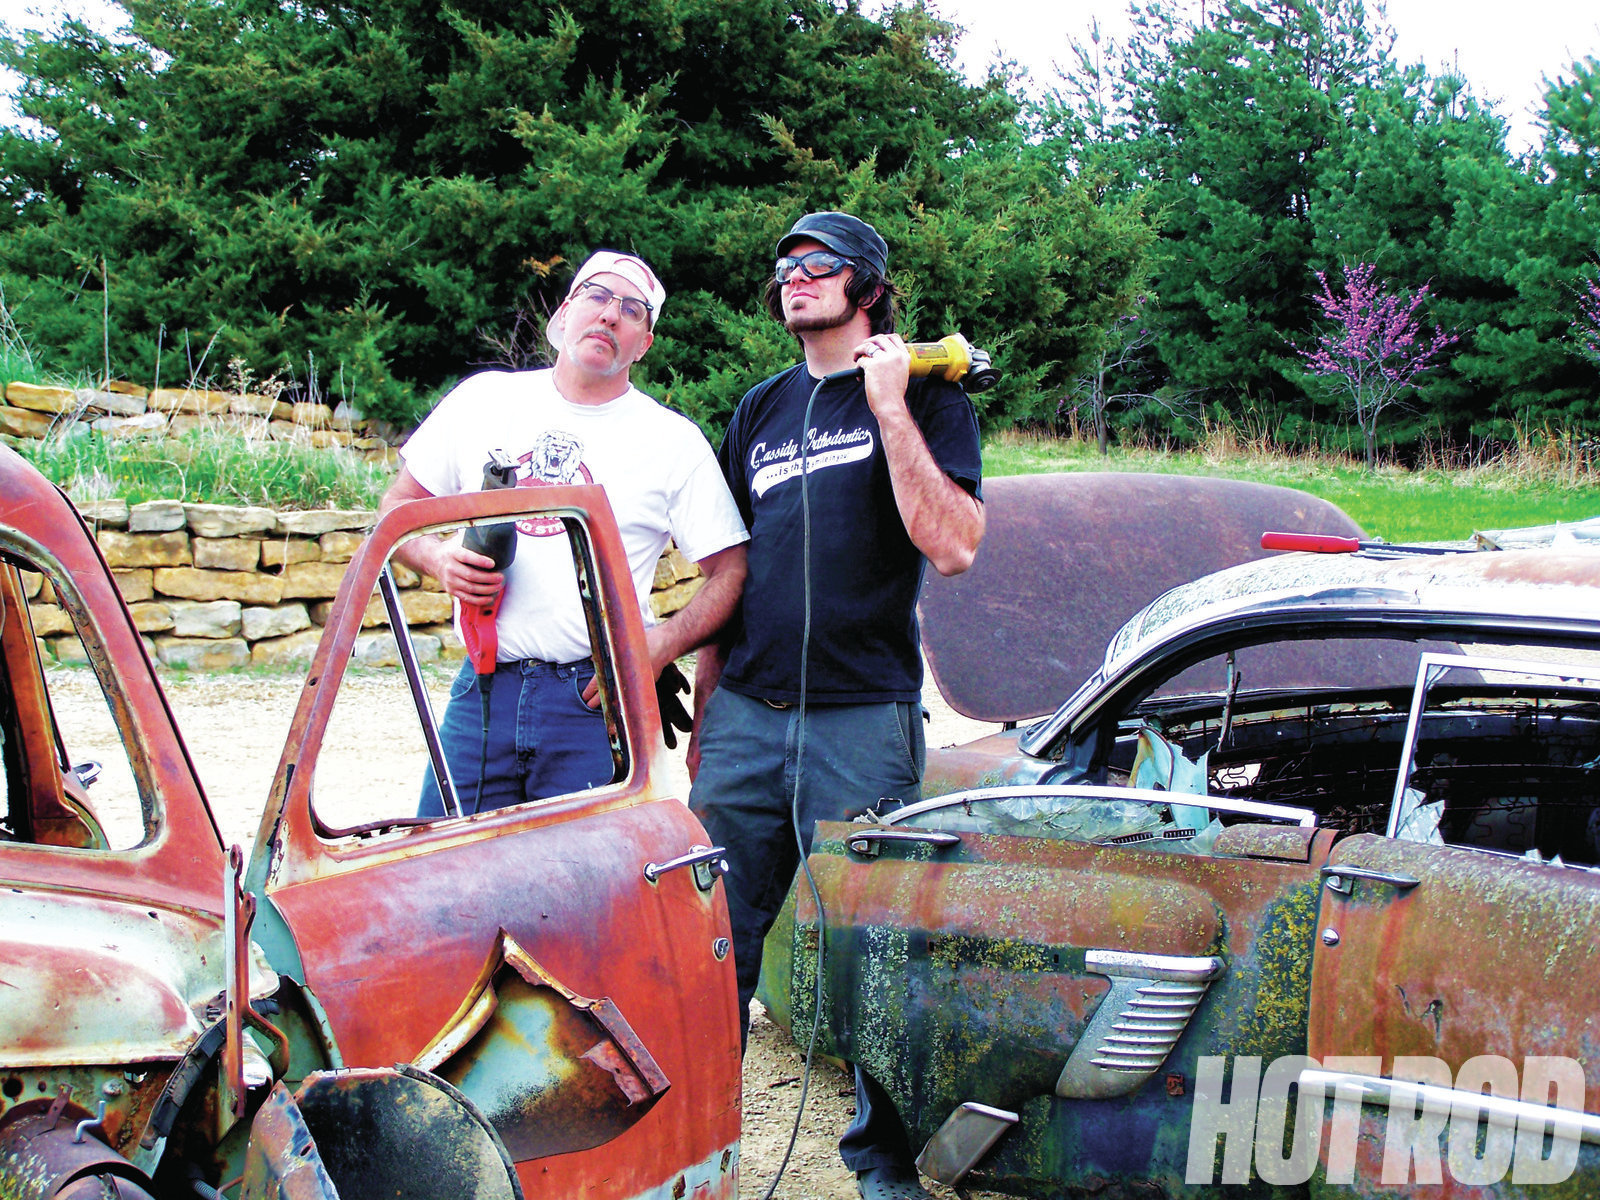 Last year, Bob and Garrett Larson never made a full pass at Drag Week™. Bob blew the rearend in his 38 Special coupe, a mix of body parts from 30 different cars, right on the starting line. Over the winter, the father-and-son team repaired the 38 and built a roadster for a buddy using parts from a '41 Plymouth four-door, a '58 Chevy straight-axle, an '88 Chevy rearend, a '56 Ford trunk lid, '37 Chevy wheelwells, a 500-cube Caddy motor, a '38 Dodge grille, a '50 Ford roof (for a rear pan), and '37 Chevy taillights. The Plymouth, uh, Ford, er, Dodge has a 130-inch wheelbase and sits 3 inches off the pavement!